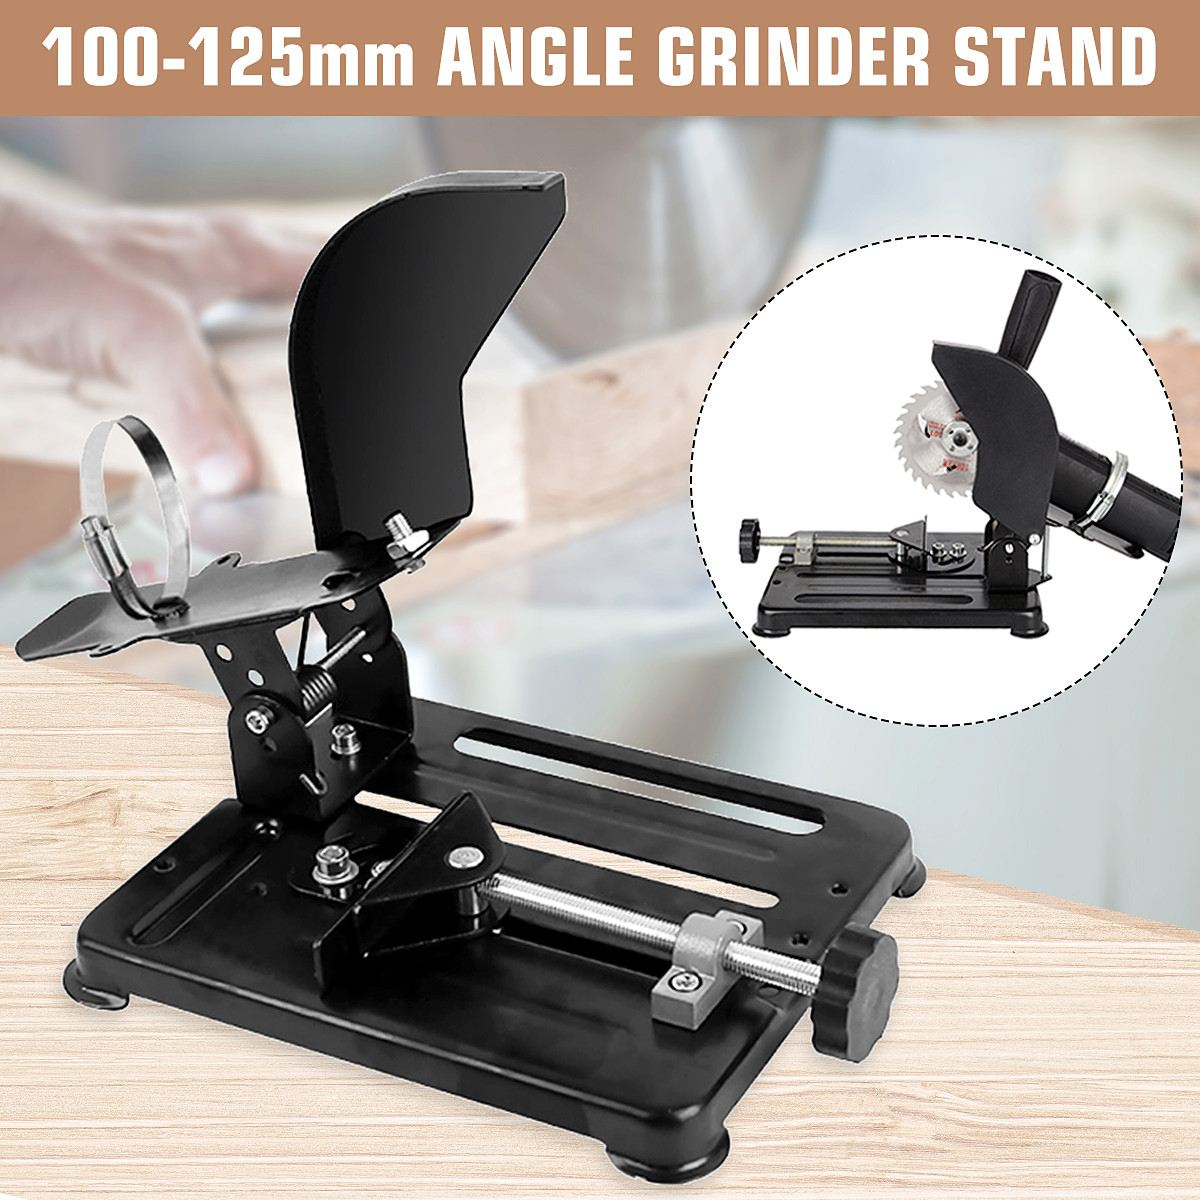 Polisher Stand Angle Grinder Stand Aluminum bracket lightweight support Holder for 100 115 125mm angle grinder cuttingPolisher Stand Angle Grinder Stand Aluminum bracket lightweight support Holder for 100 115 125mm angle grinder cutting